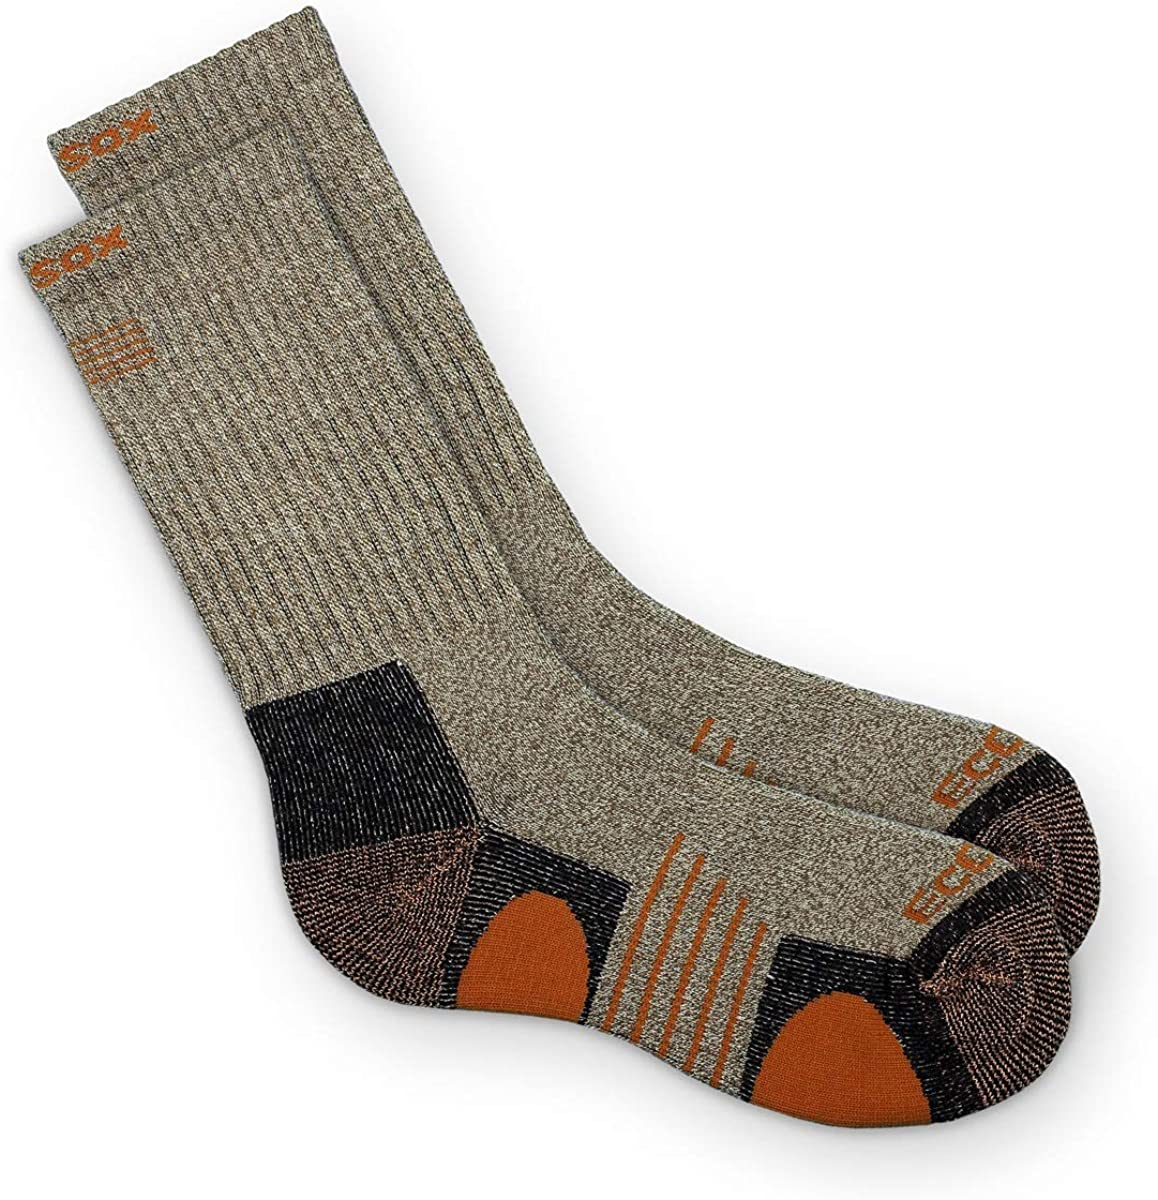 EcoSox Bamboo Viscose Full Cushion Hiking/Outdoor Crew Socks for Men & Women | Keep Your Feet Dry, Odor, & Blister Free (Large - Brown with Orange)